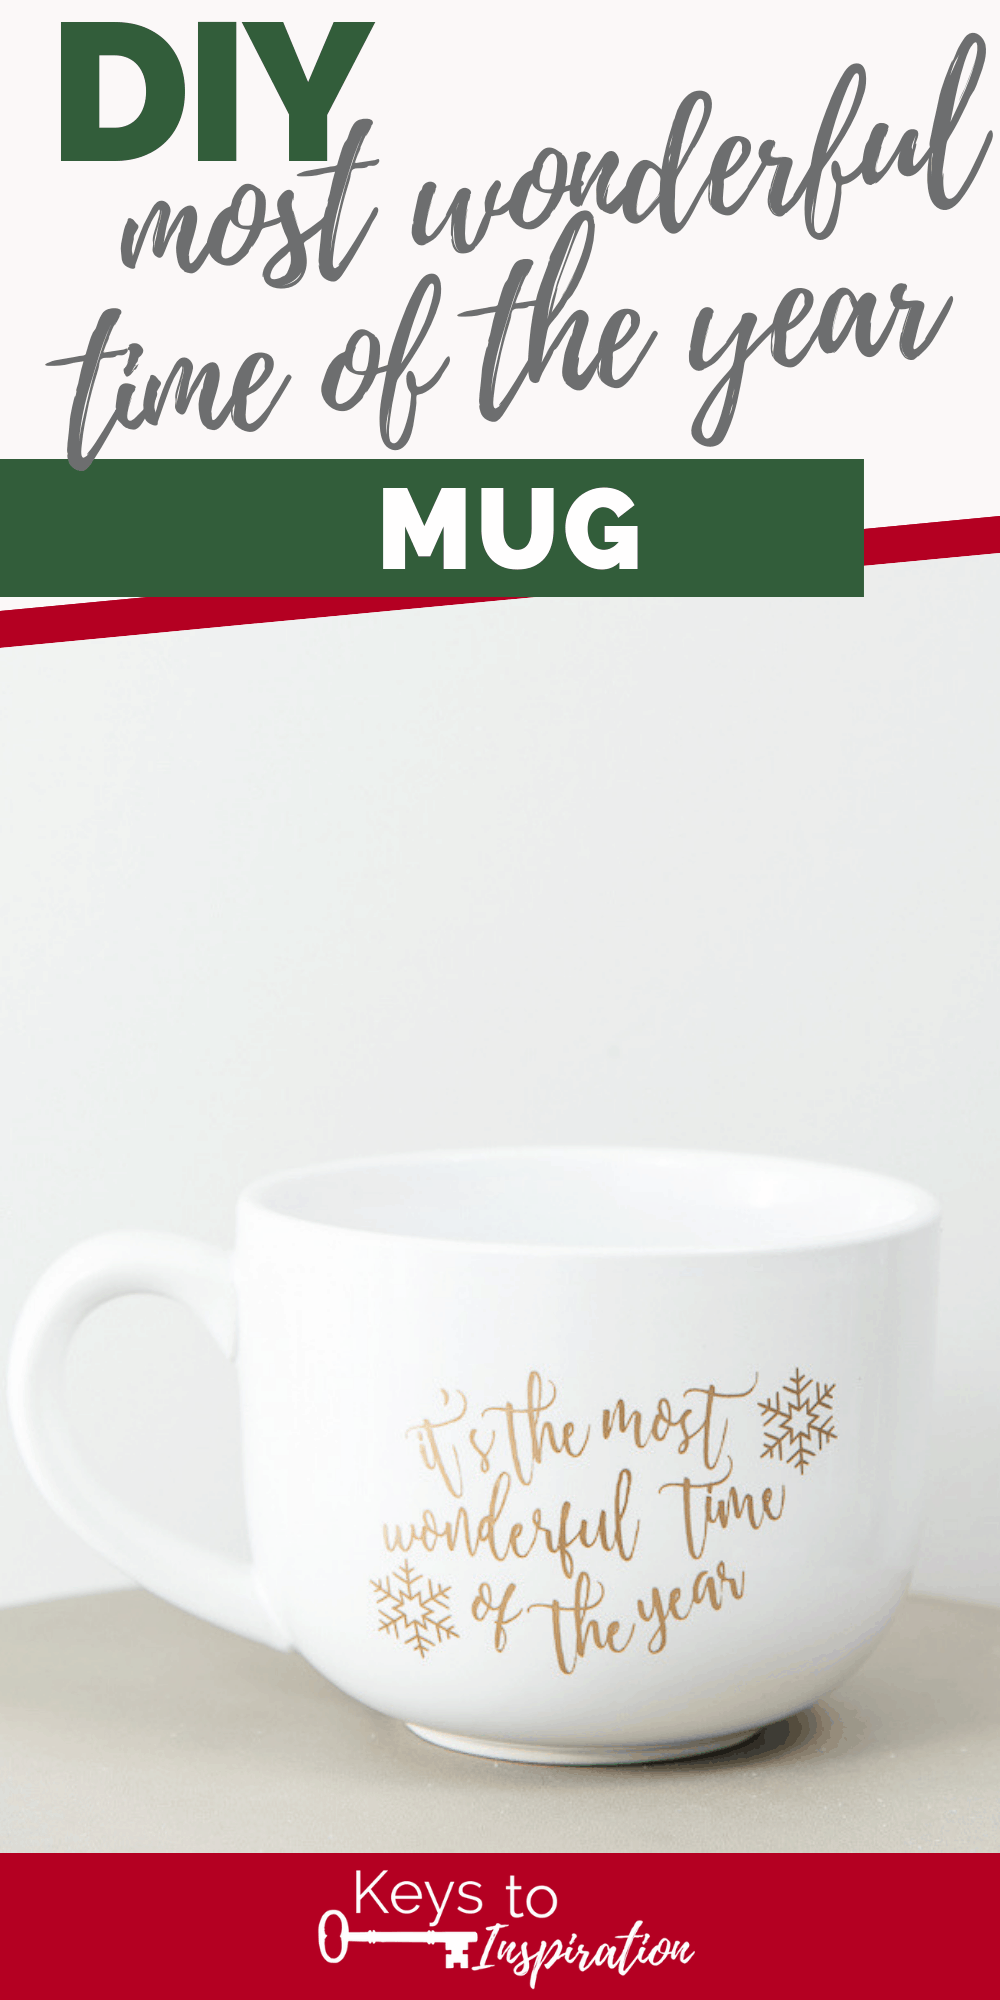 the most wonderful time of the year mug cricut project